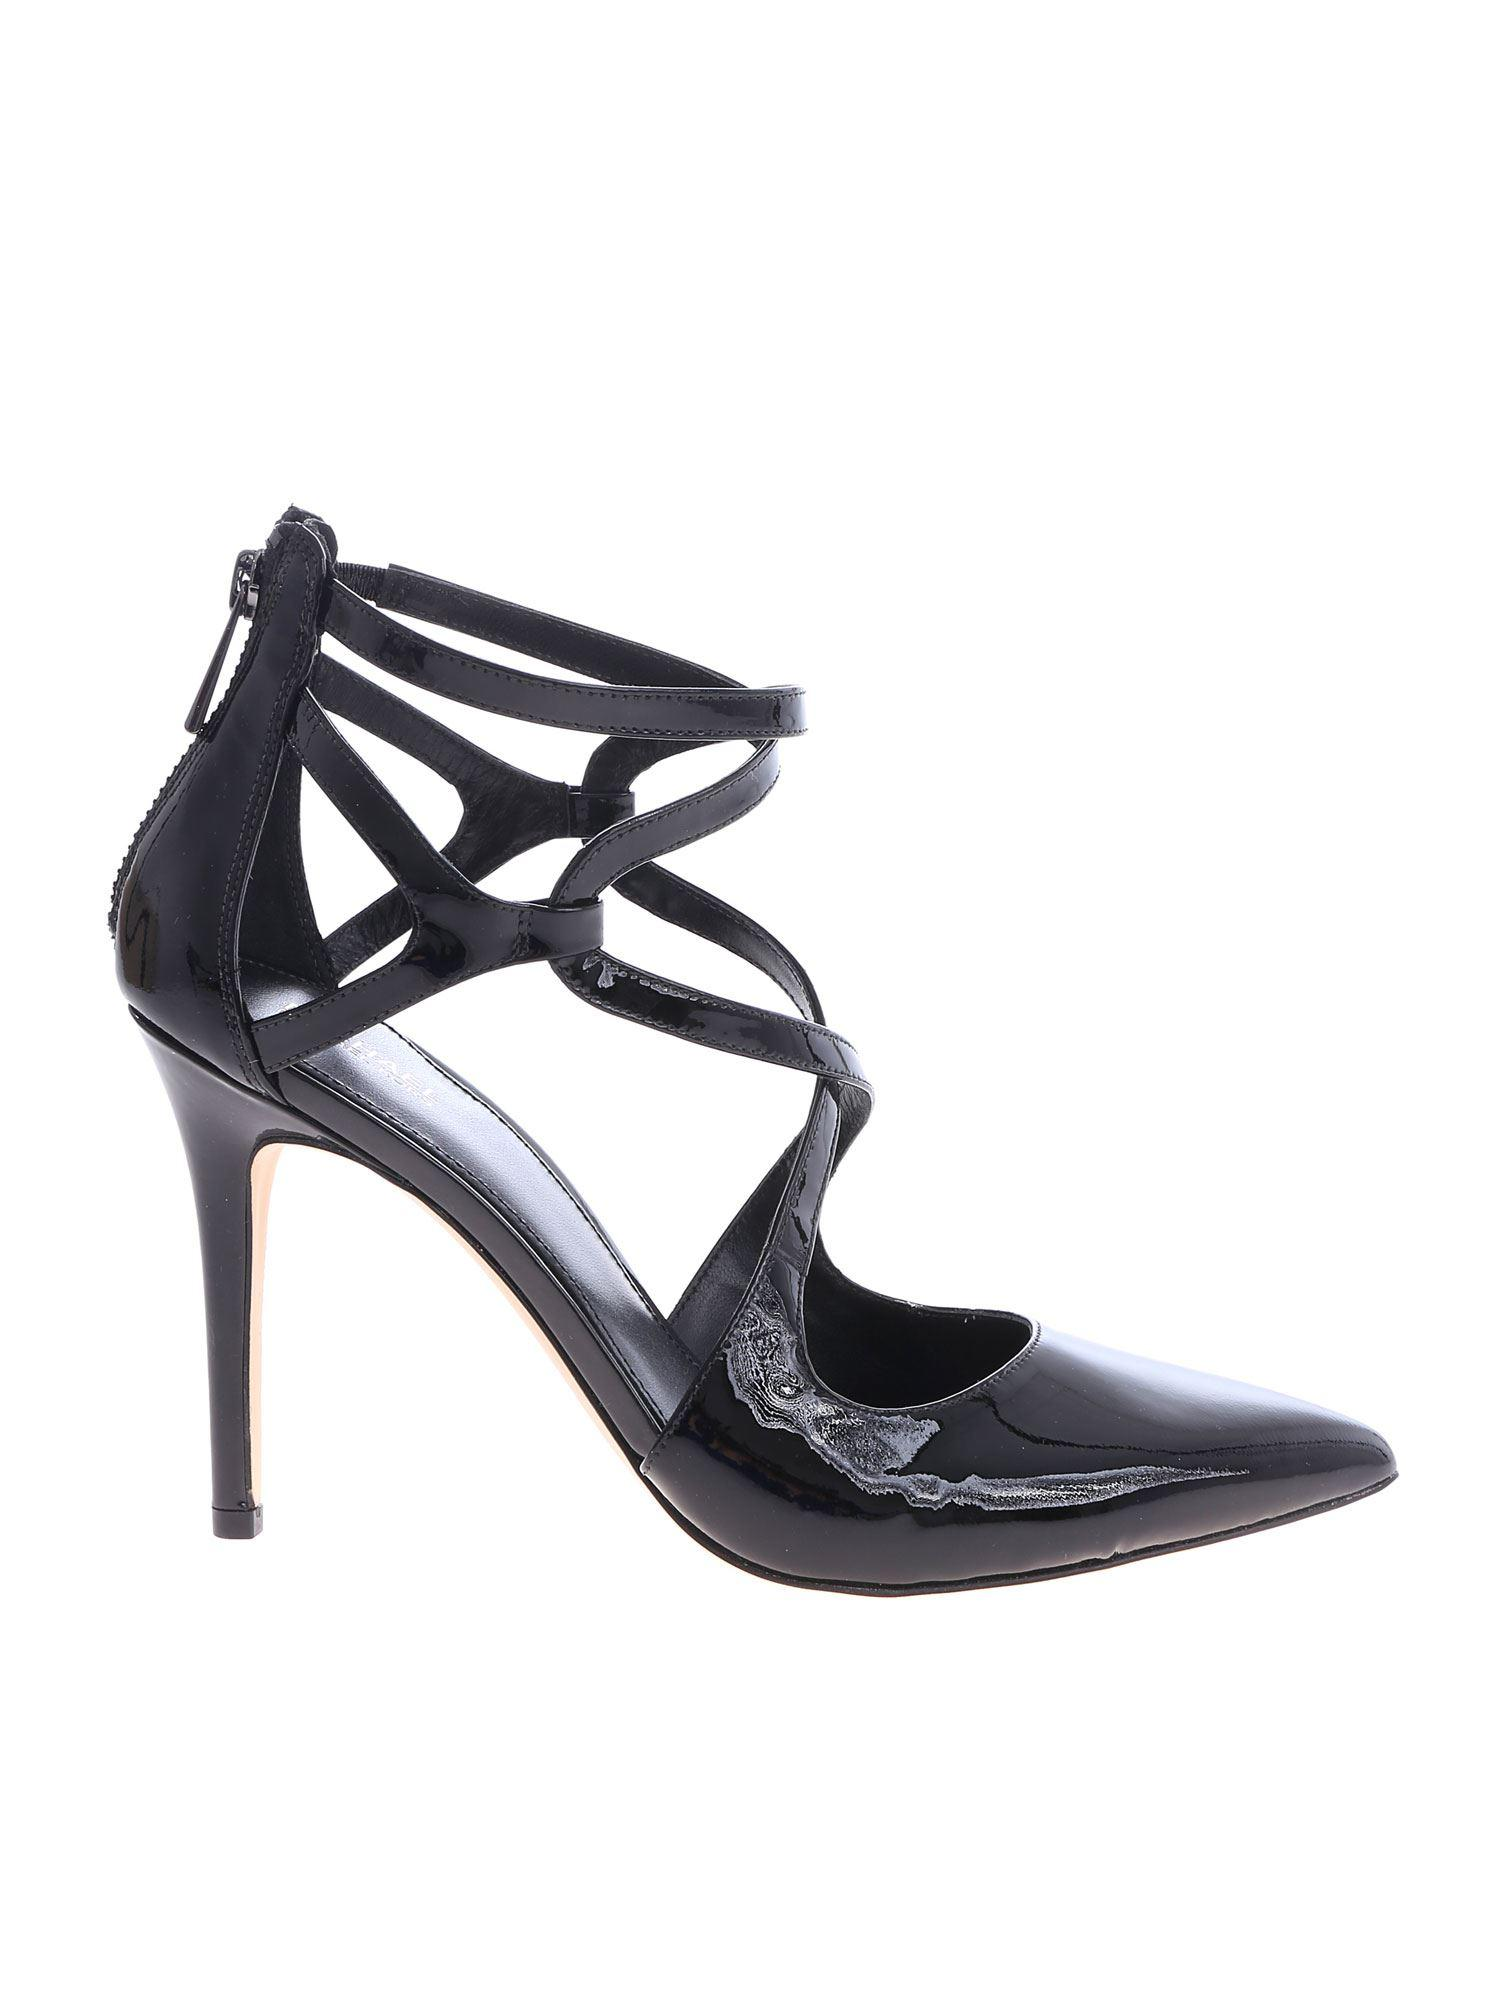 ae5b40e9bafd Lyst - Michael Kors Catia Pumps In Black Leather in Black